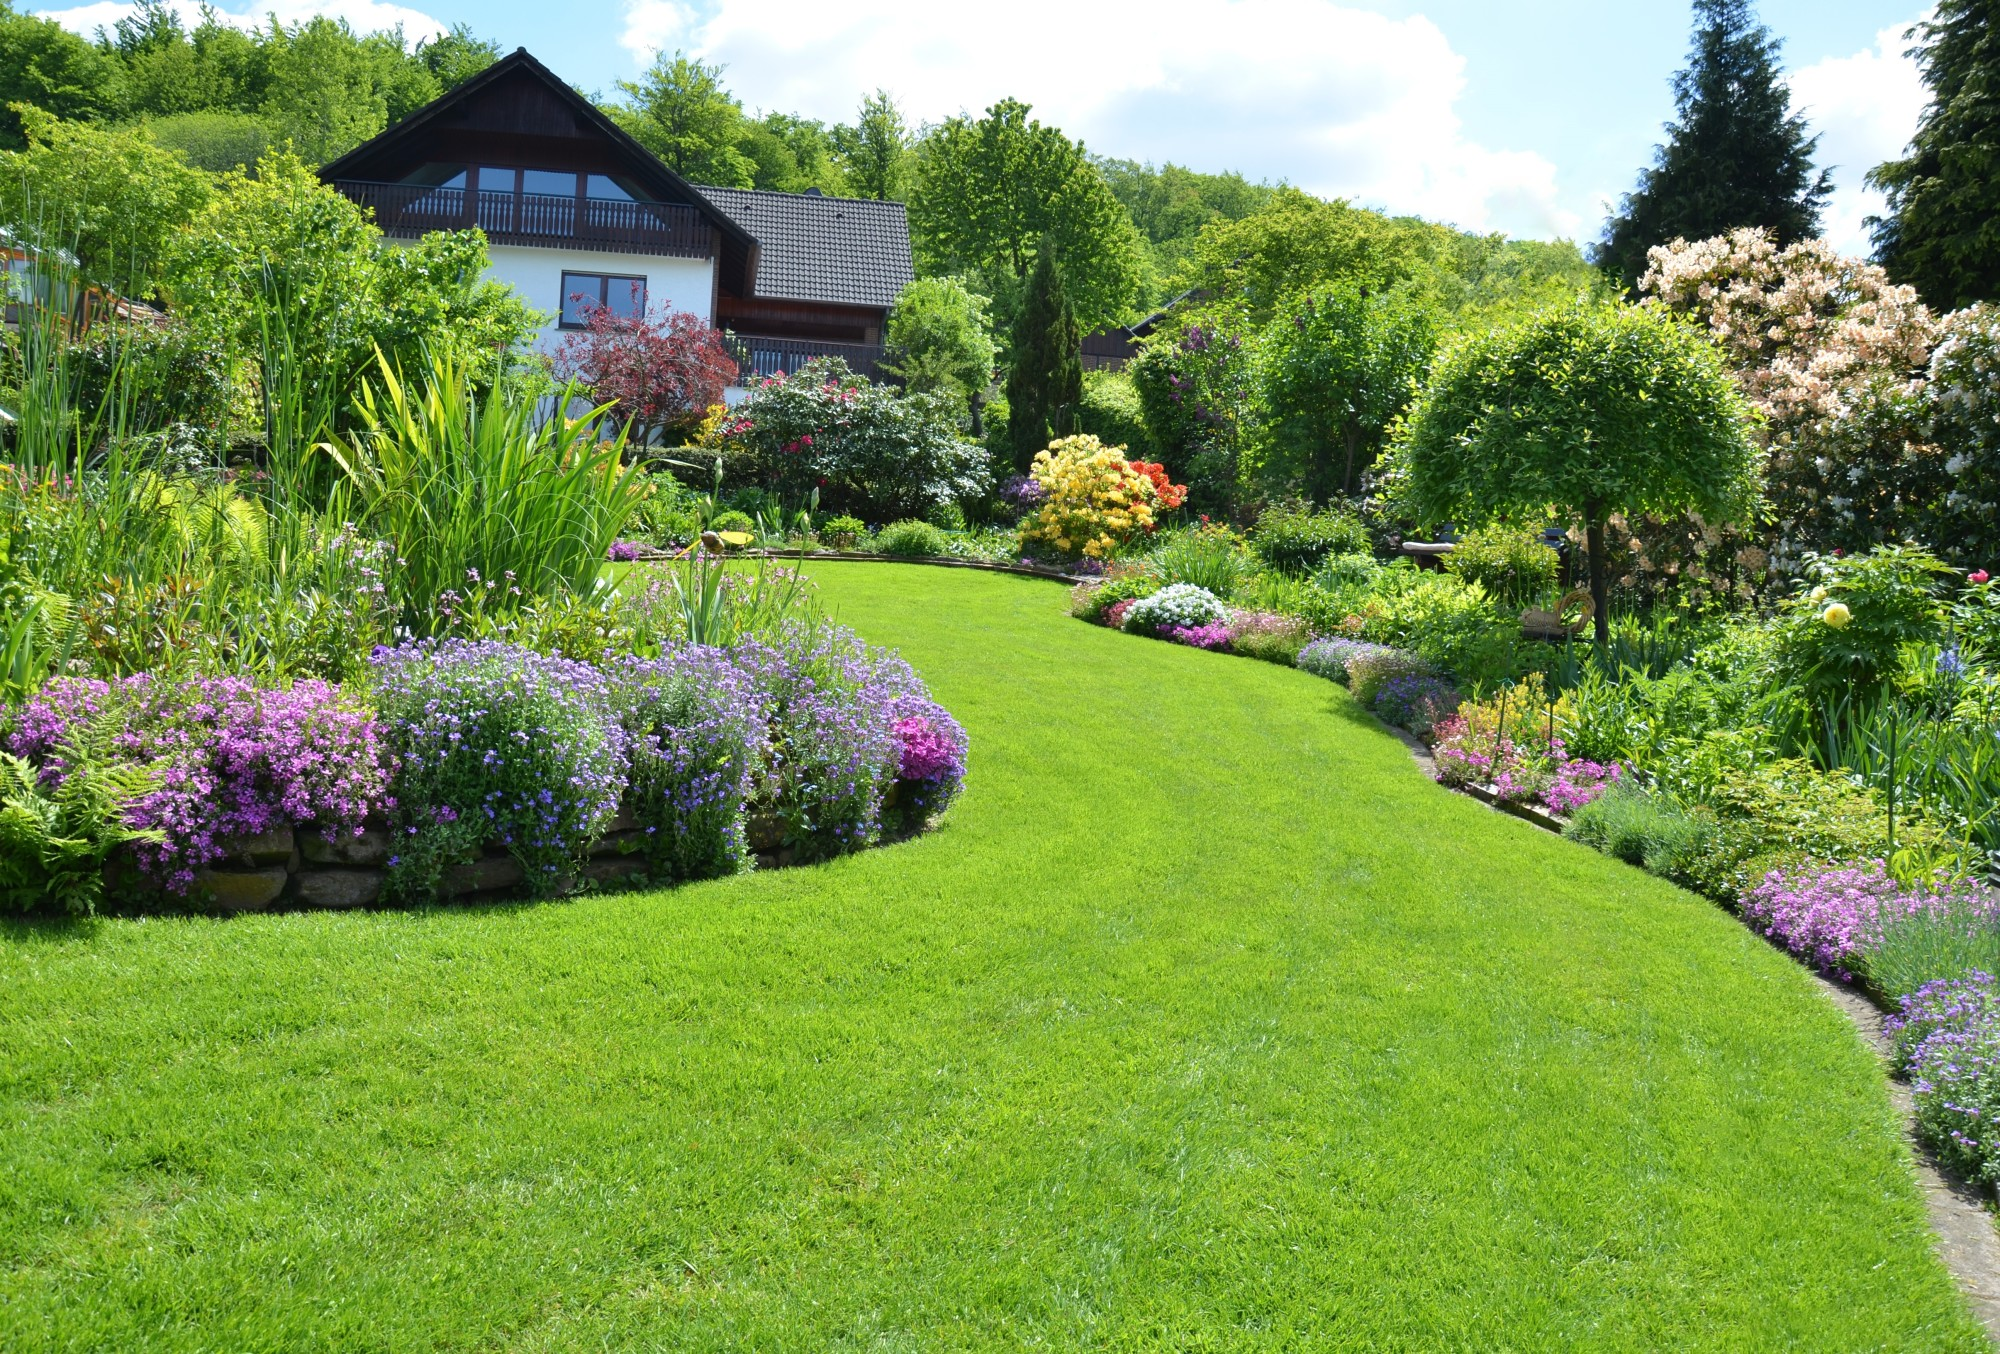 3 Landscaping Tips and Tricks for Homeowners